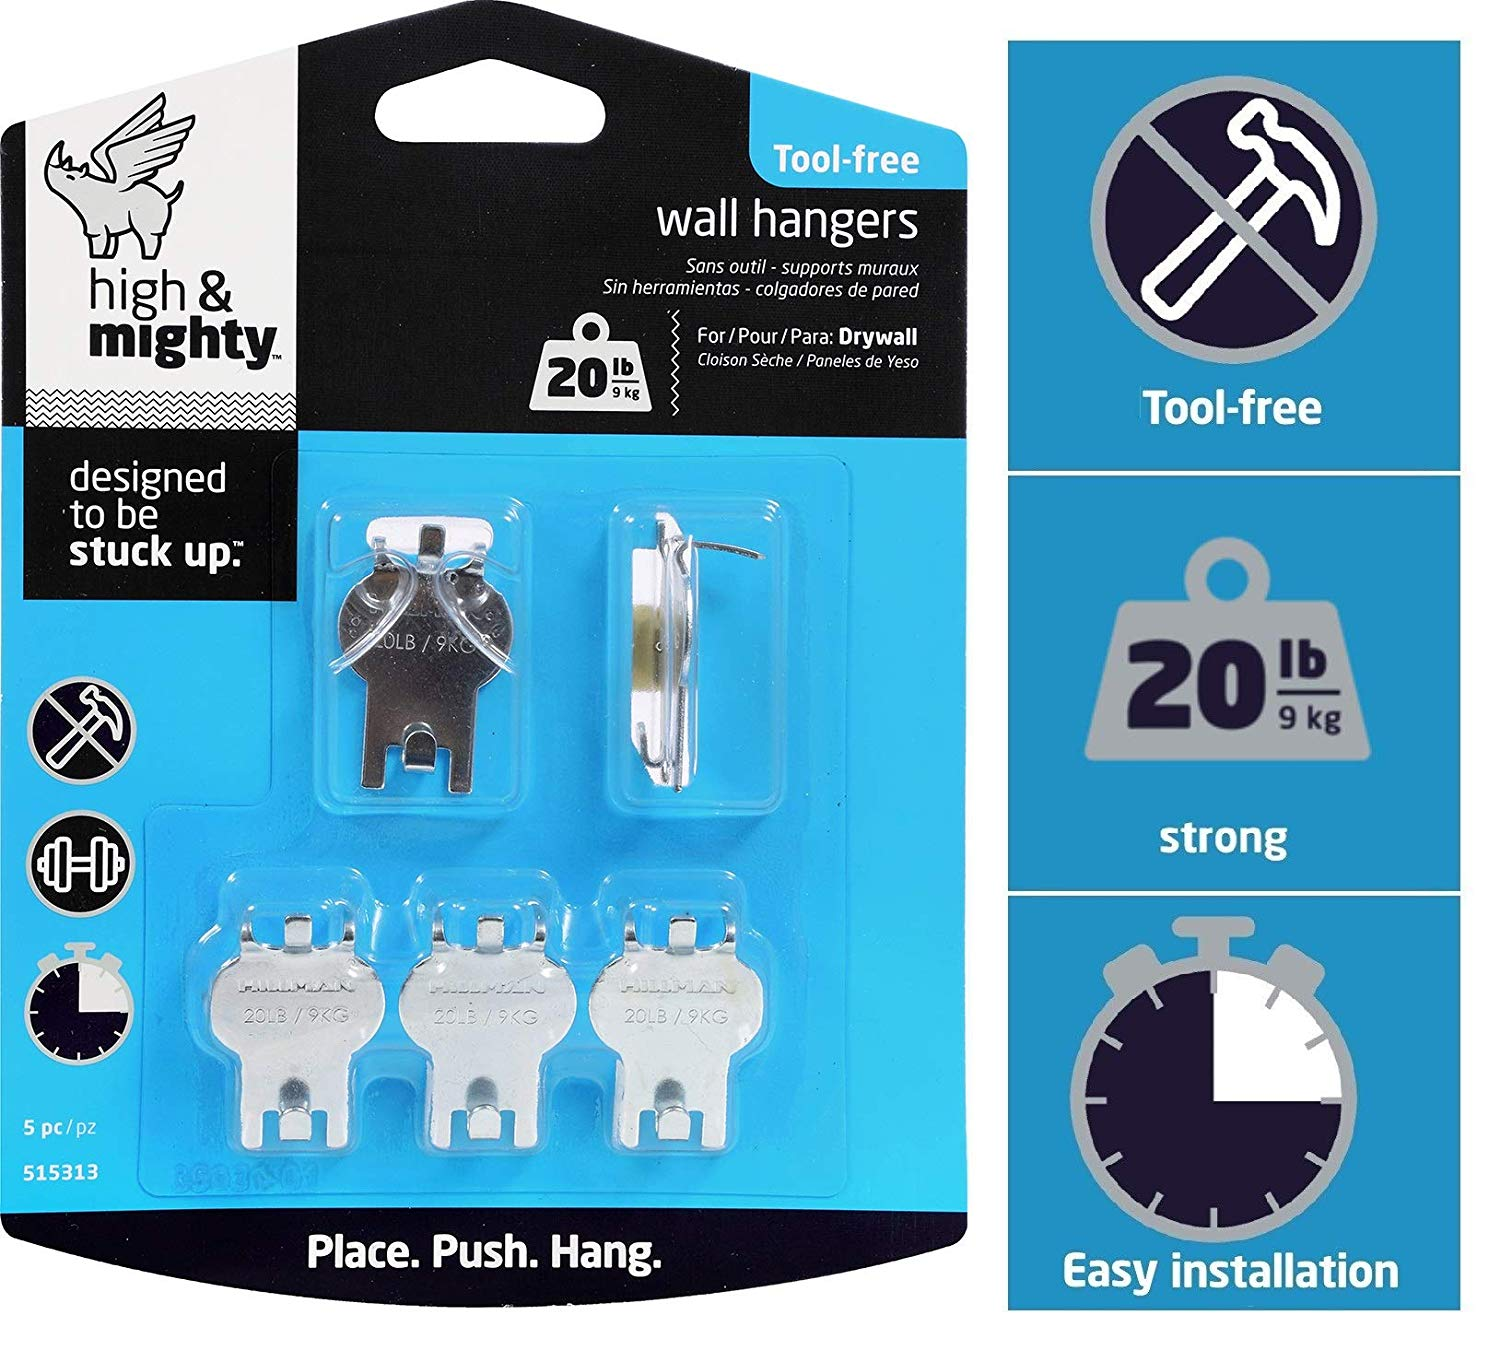 HIGH & MIGHTY 515313 Tool Free Picture Hanging Kit, 5 Pieces, 20LB Limit - $2.71 at Amazon